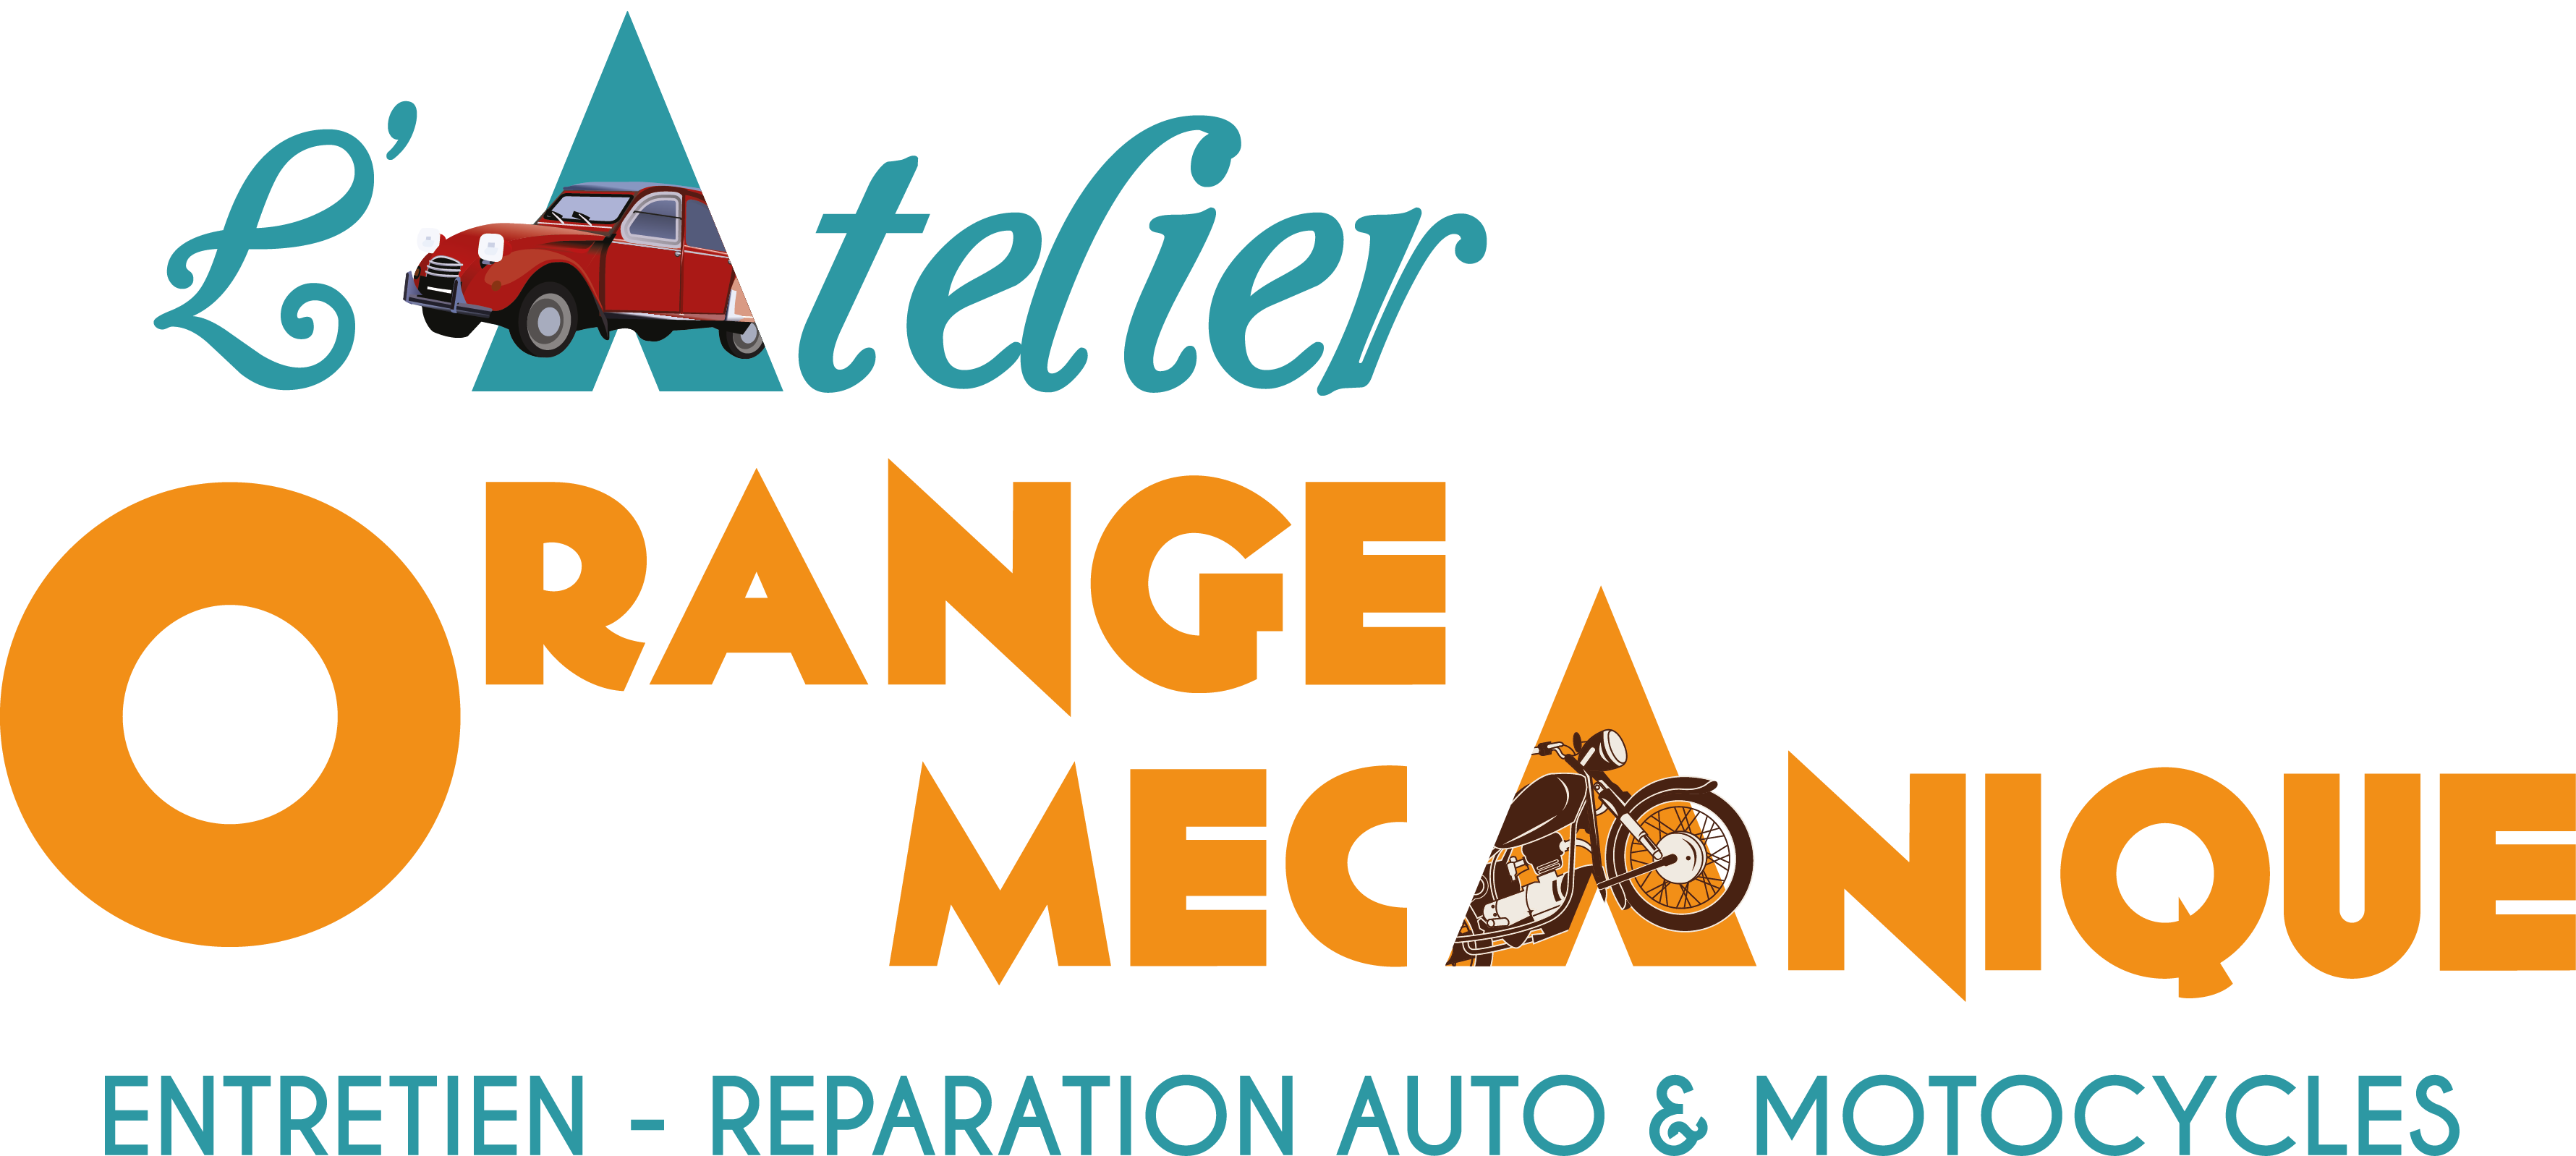 L'atelier orange mécanique Logo